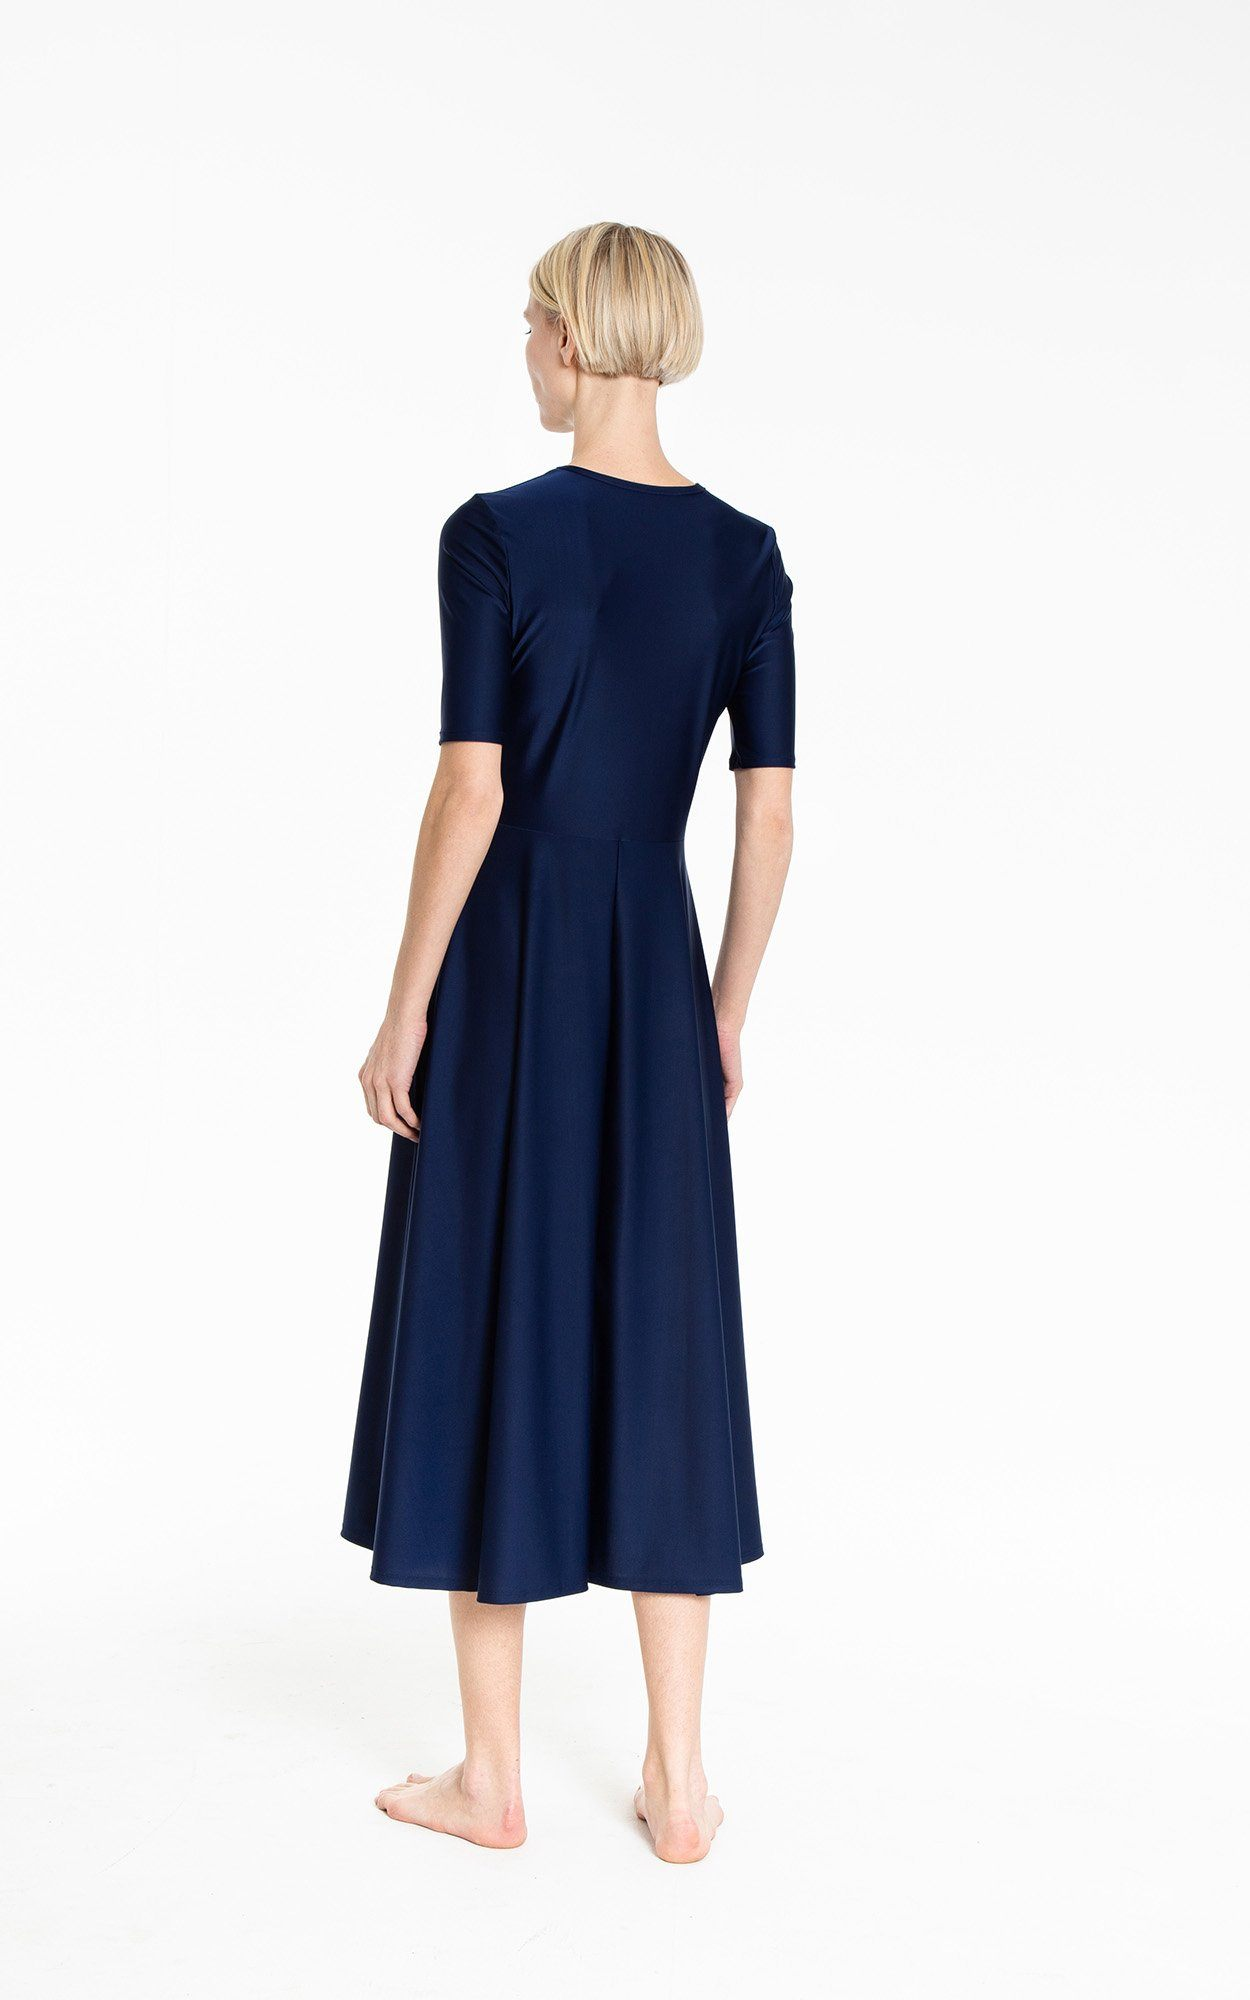 Elbow Sleeve Dress - Navy